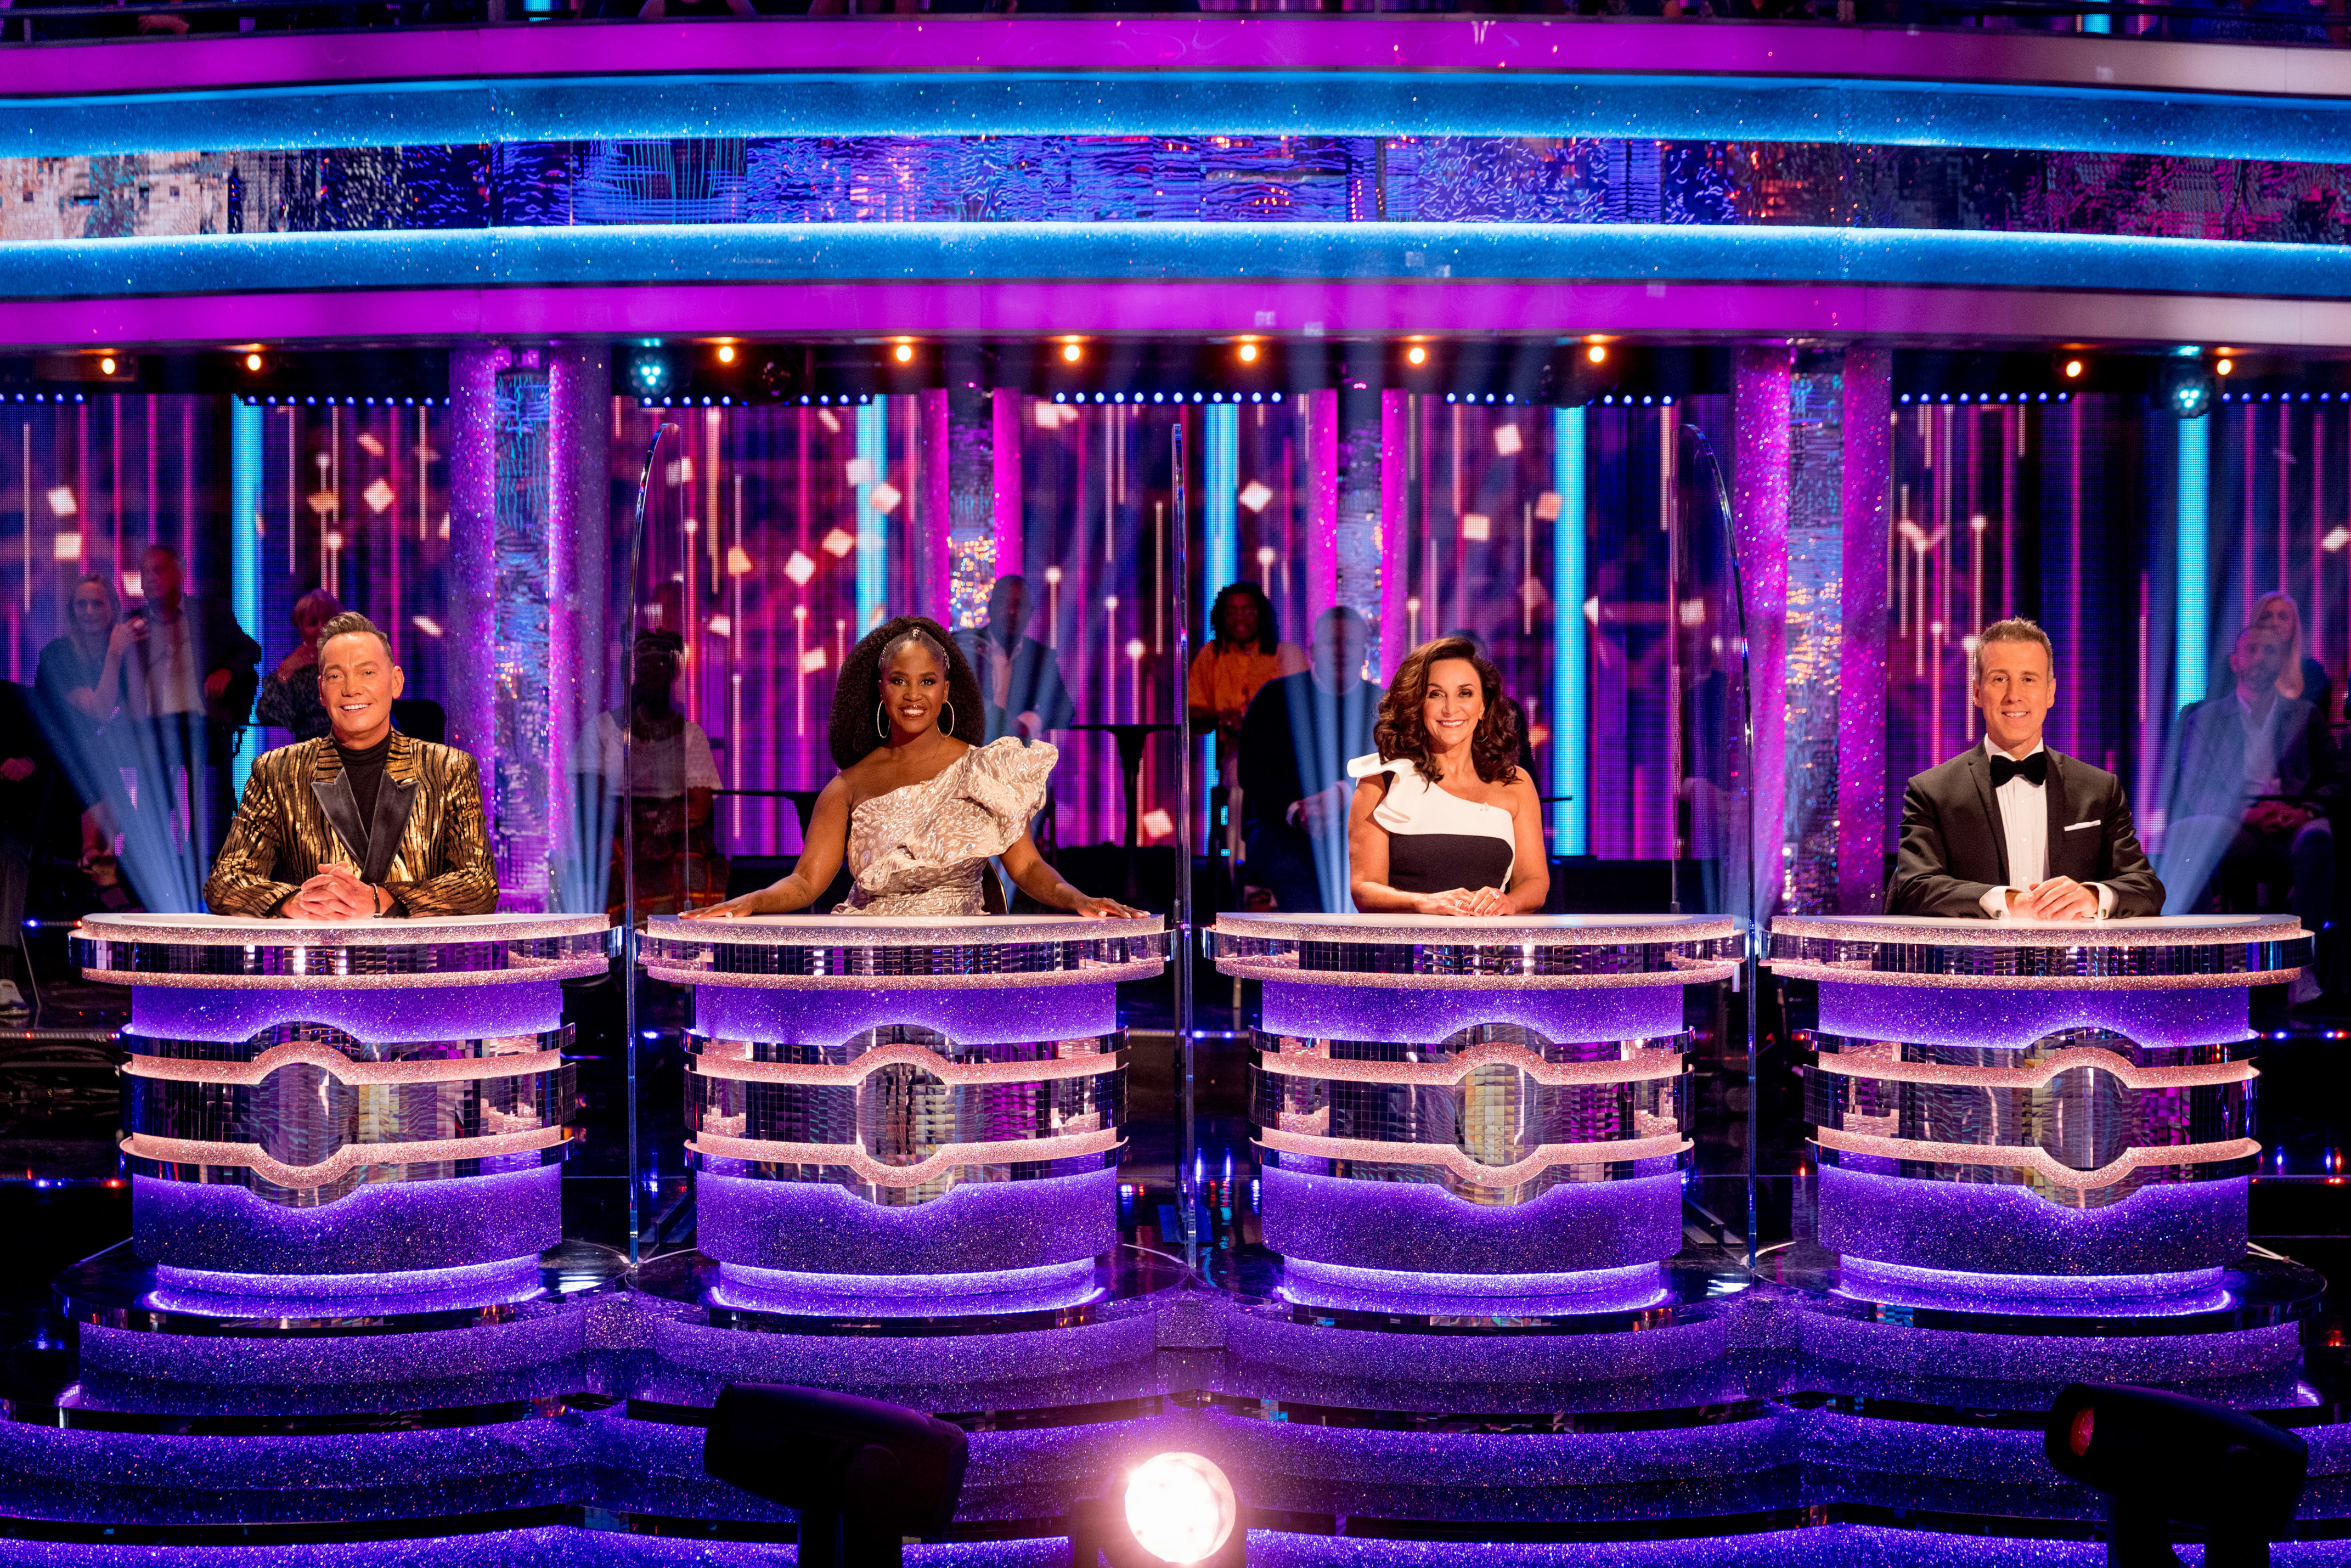 Judges Craig Revel Horwood, Motsi Mabuse, Shirley Ballas, and Anton Du Beke sitting behind their individual desks (divided by transparent screens) in the Strictly studio